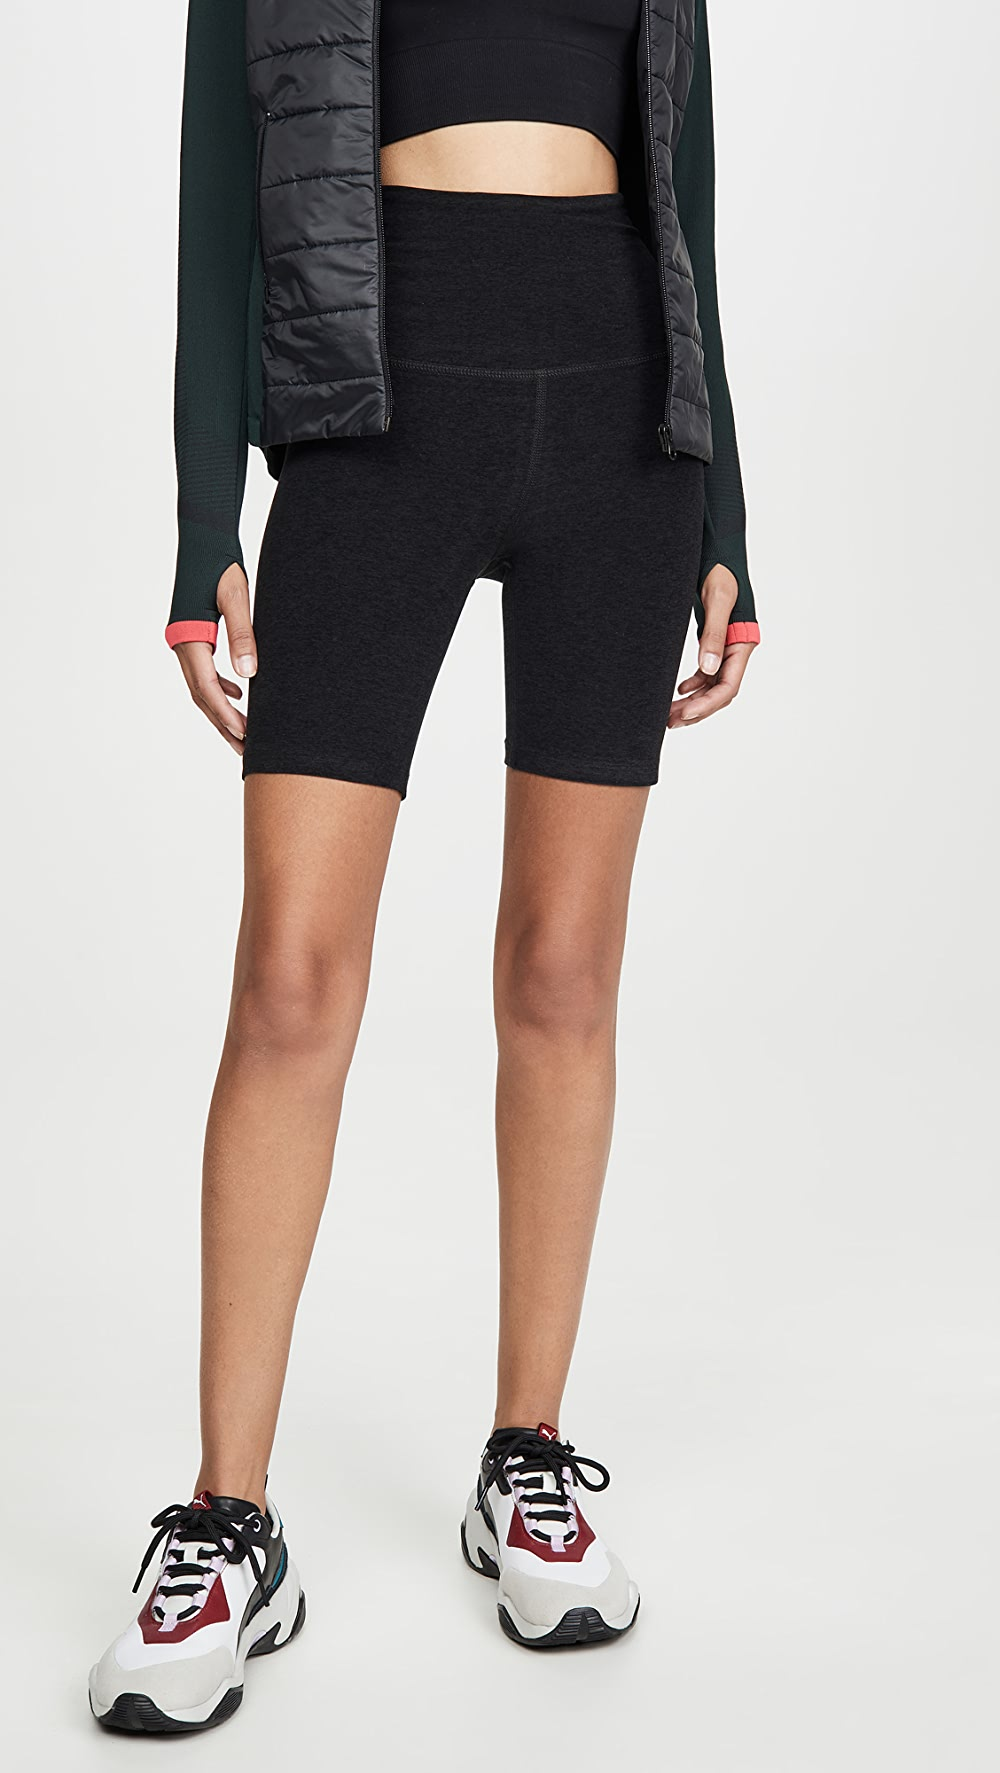 Bright Beyond Yoga - High Waisted Biker Shorts Complete Range Of Articles